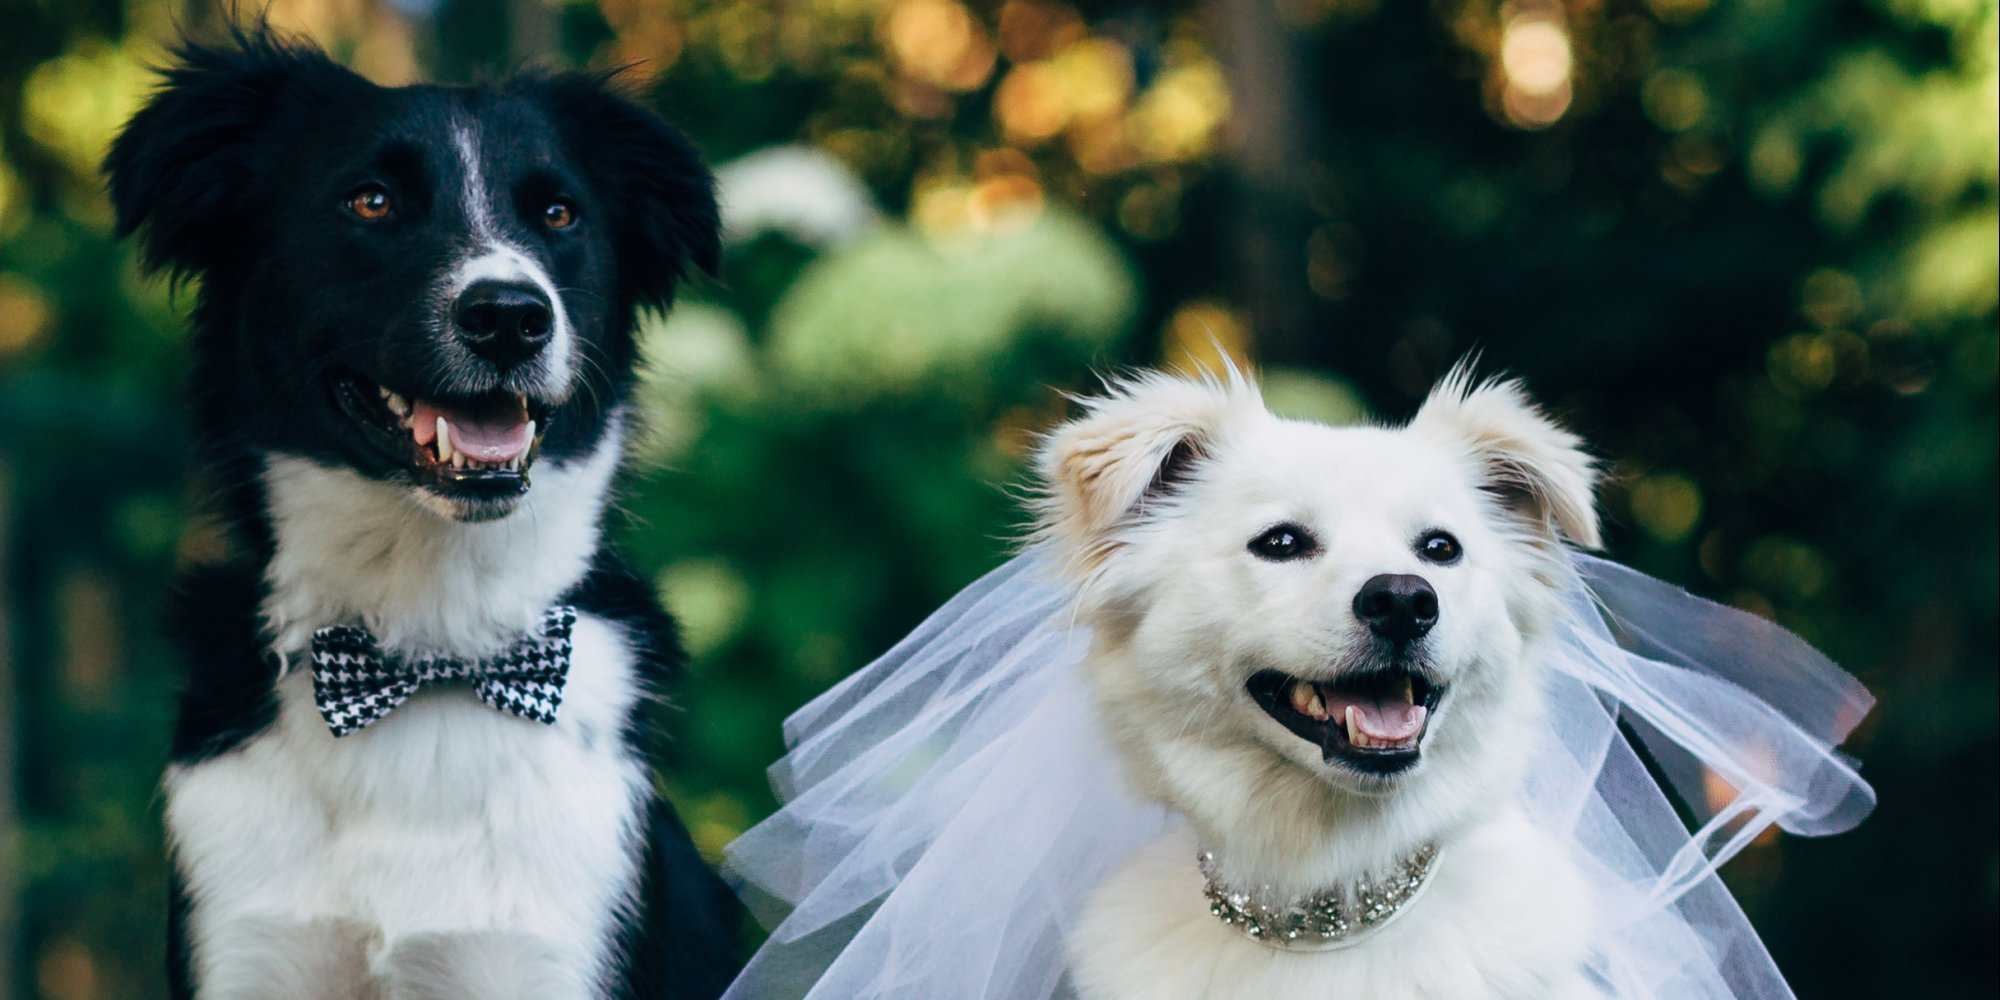 Full Hd Wallpaper Cute Couple Dog Wedding Wallpapers High Quality Download Free